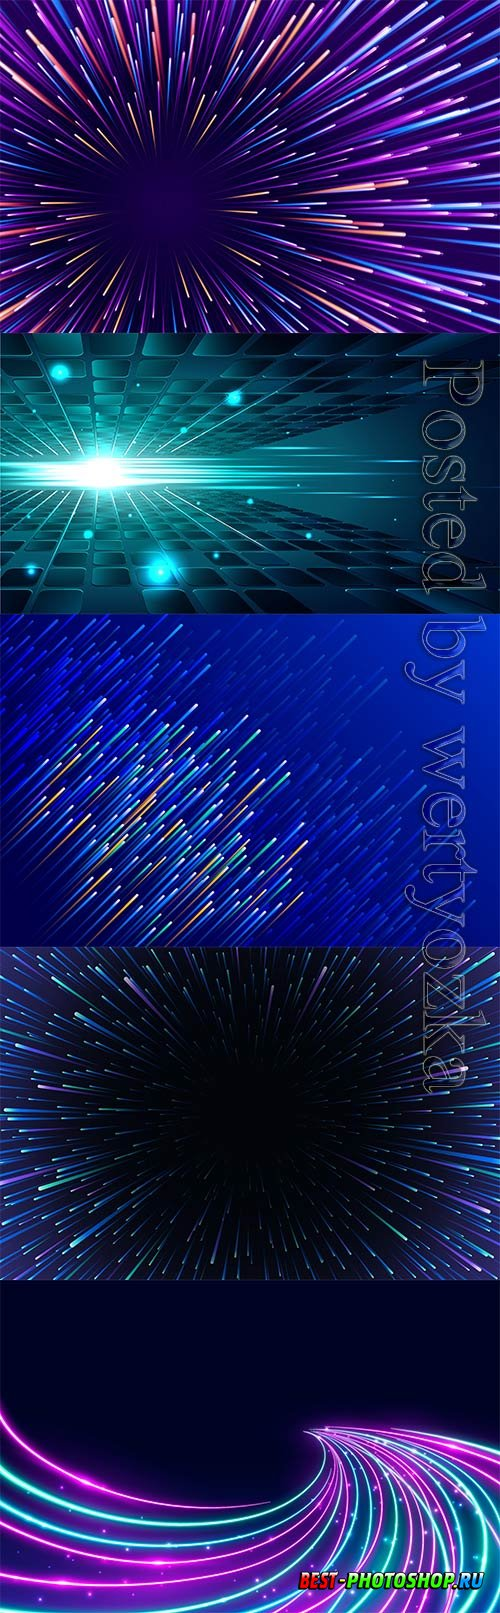 Abstract backgrounds with shining elements in vector